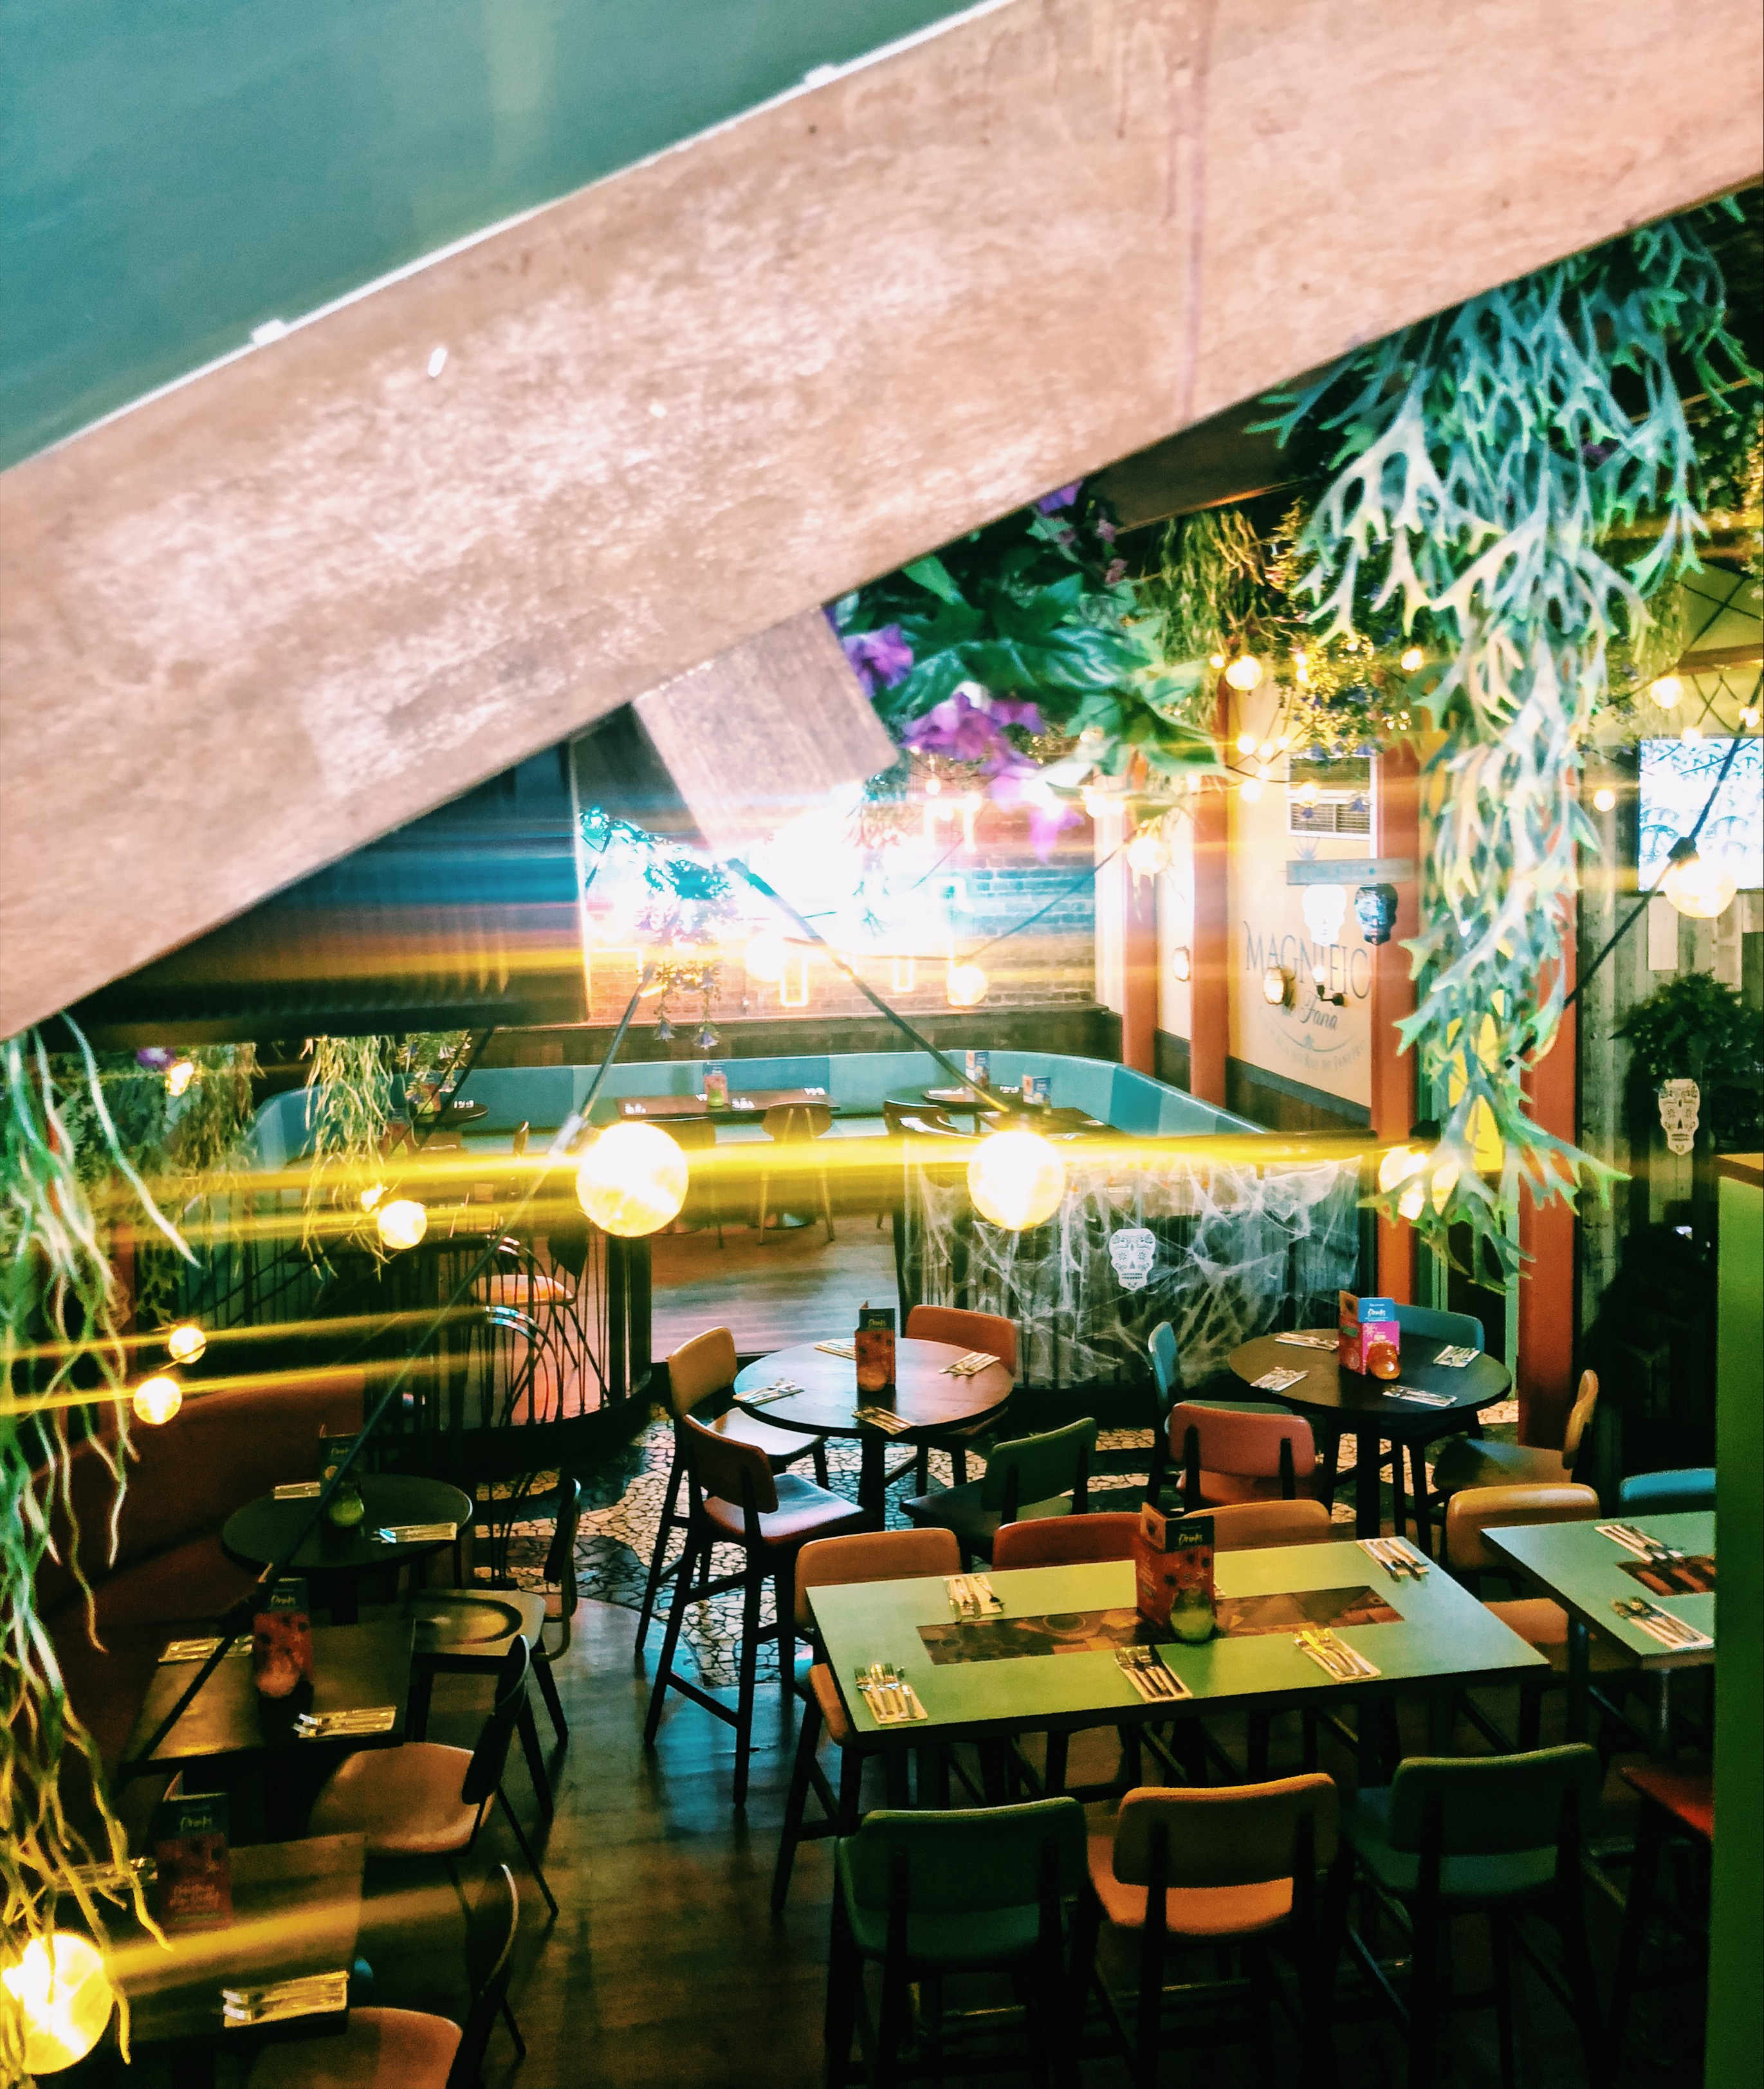 Las Iguanas London Royal Festival Hall review